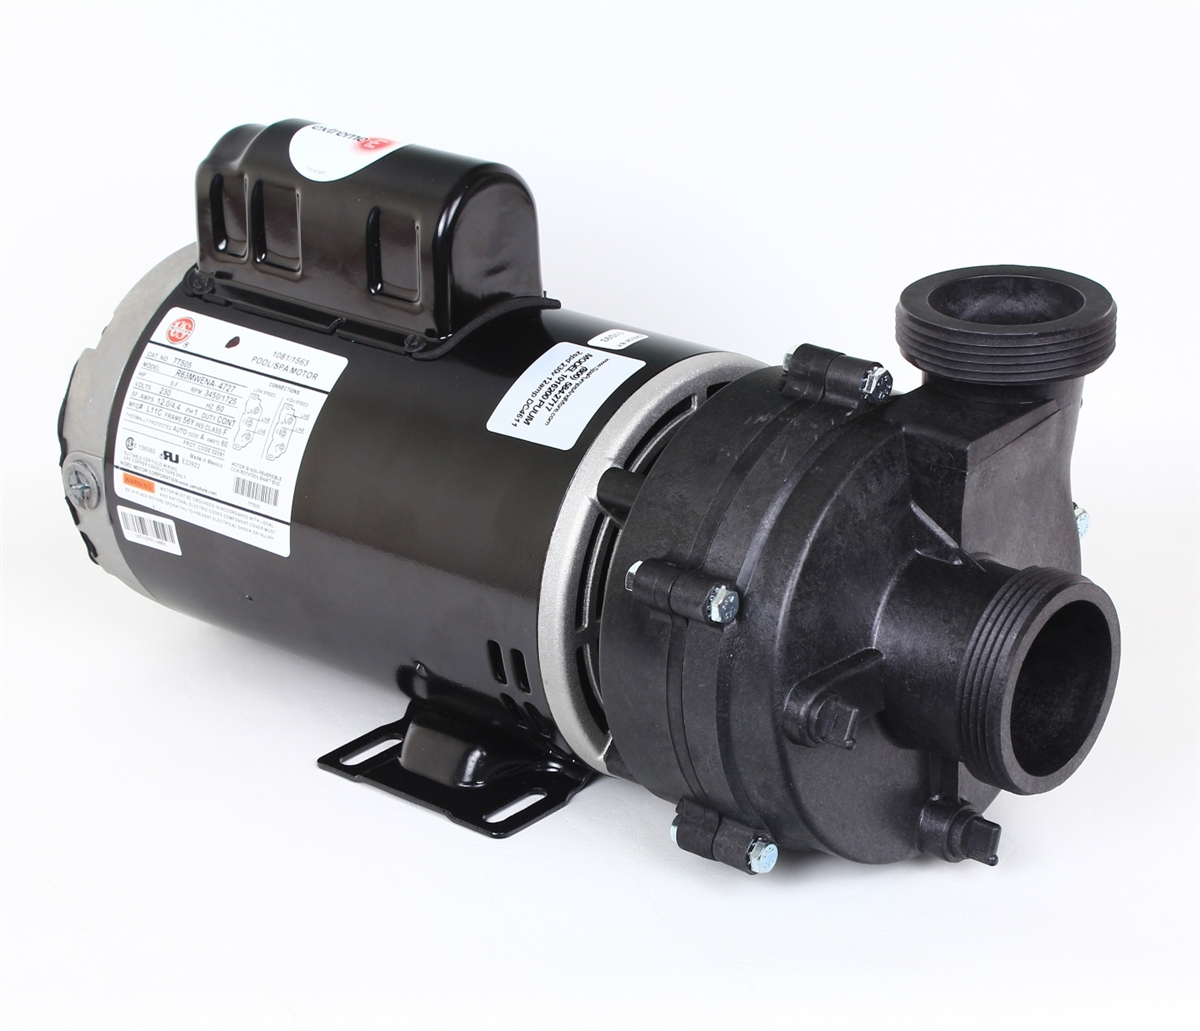 Puum2202582fr spa pump 230 volt 8a 56 frame two speed 2 sd for Spa pumps and motors